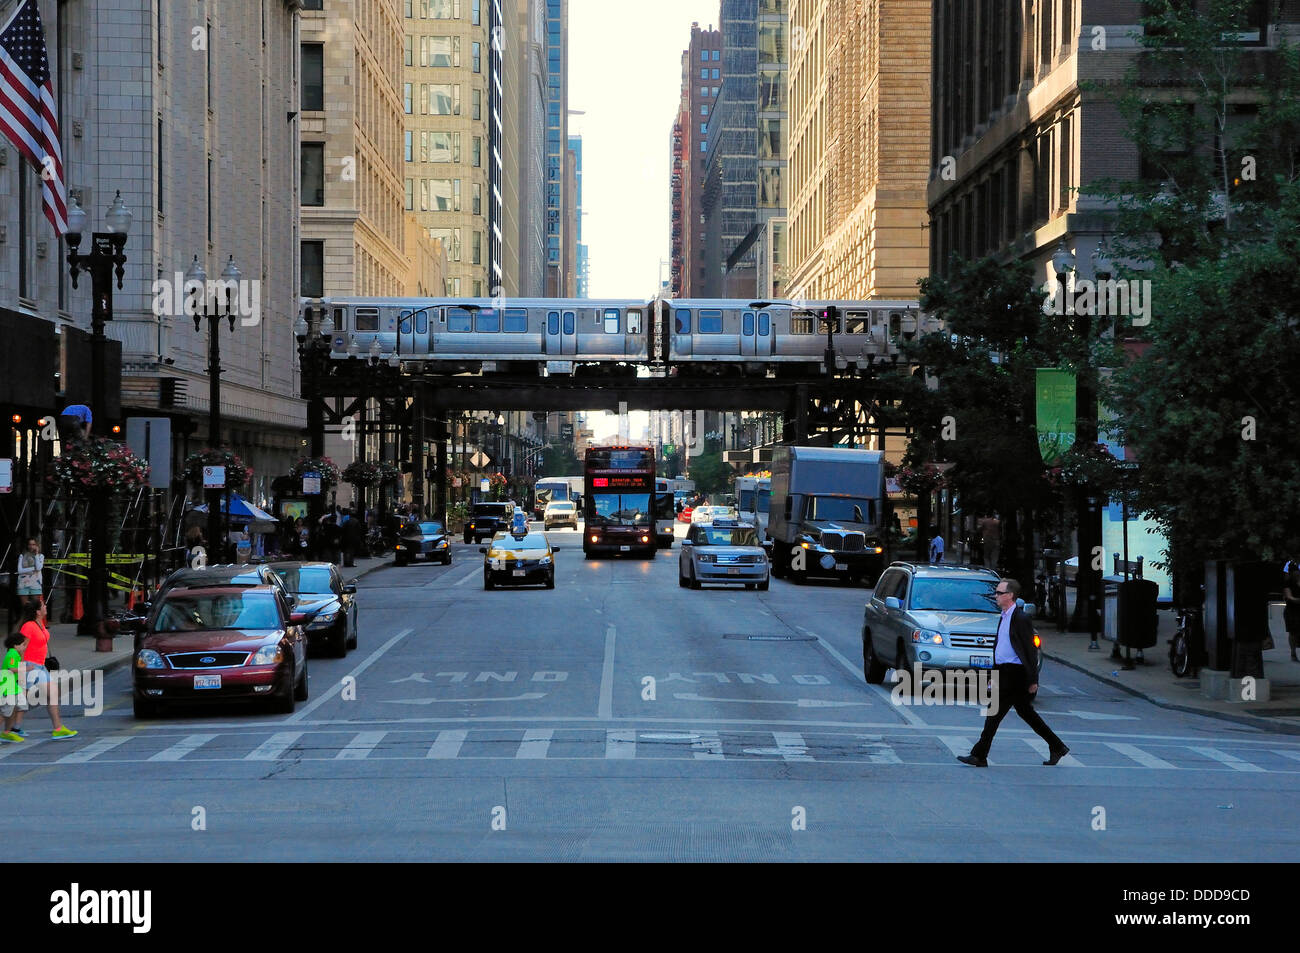 Street view of downtown Chicago. - Stock Image